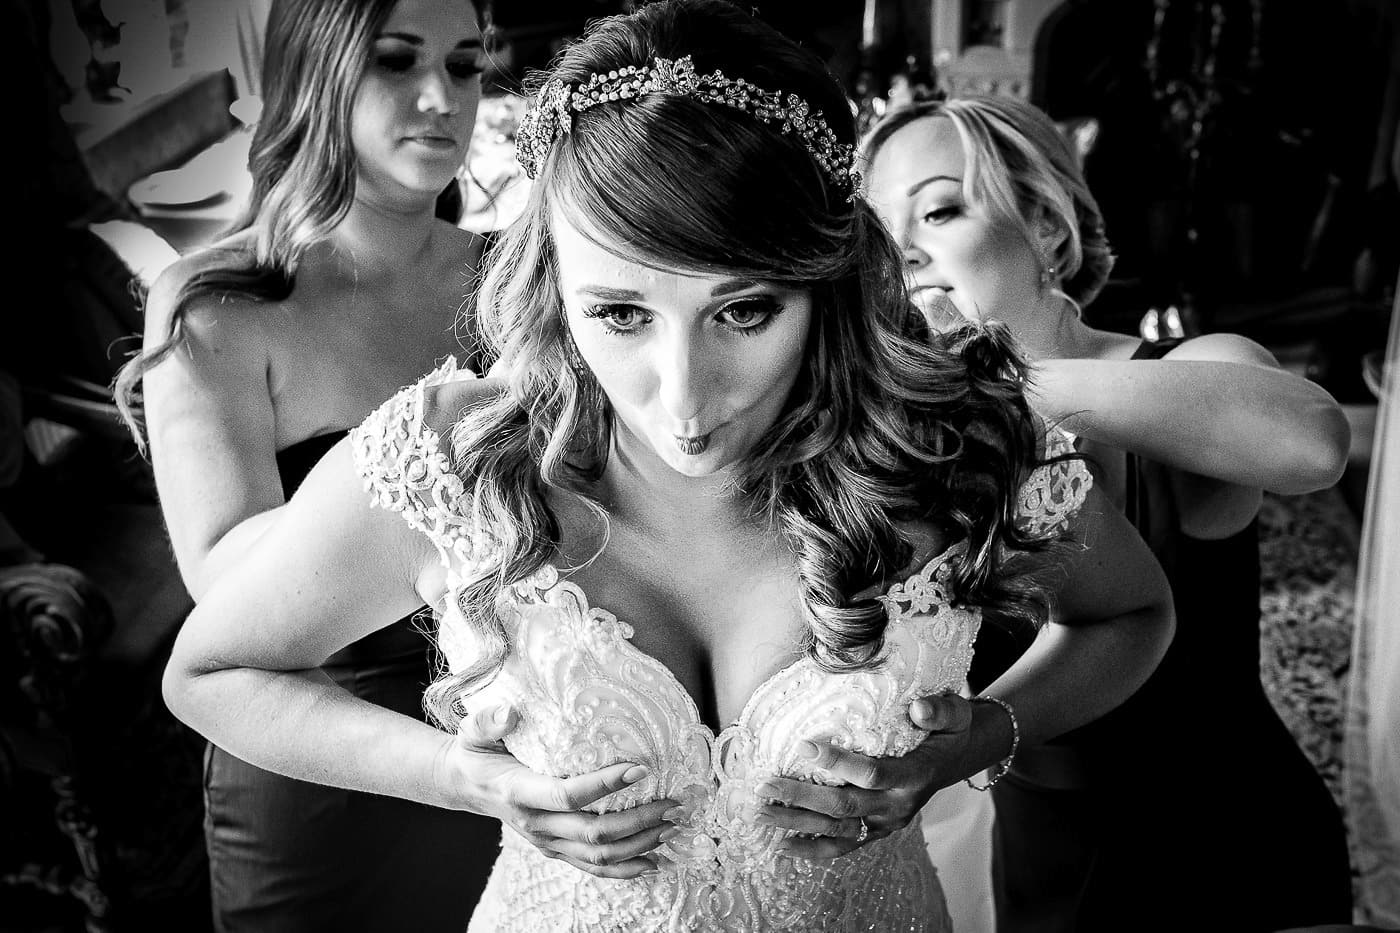 Black and white photo of the Bride getting into her wedding dress with help from her bridesmaids